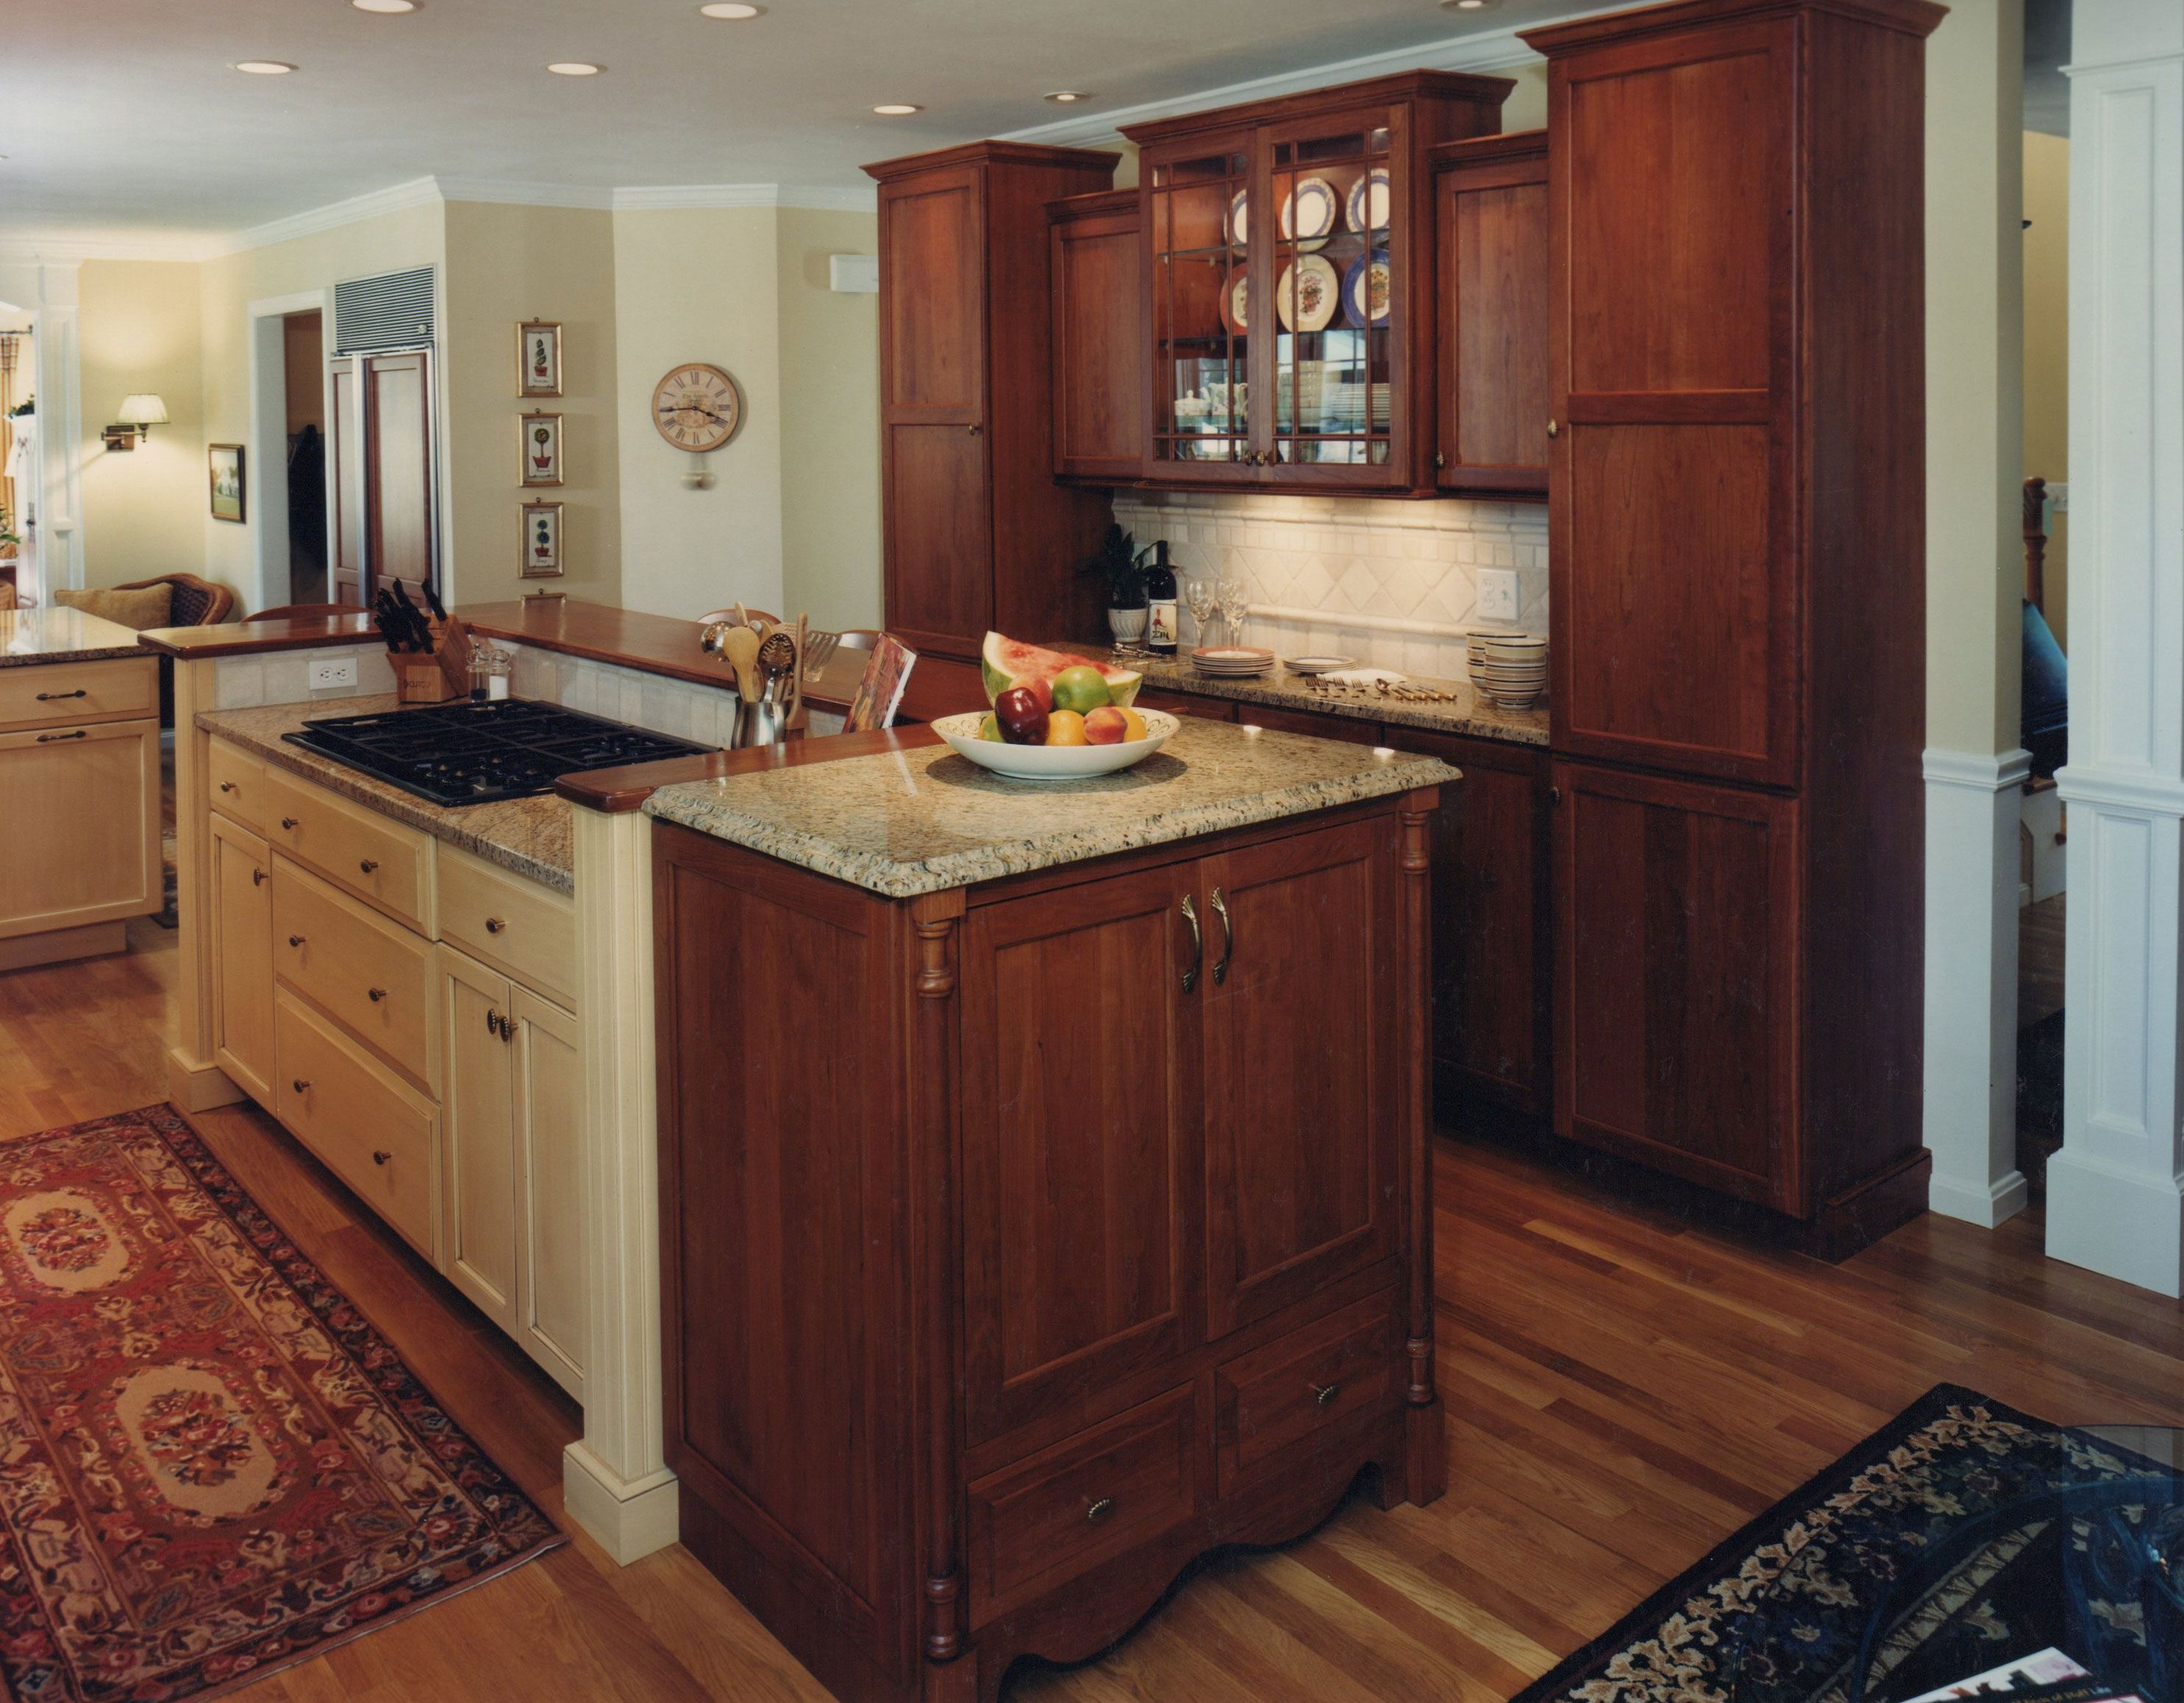 Lovable 13 brilliant kitchen island with stove top And also island ...